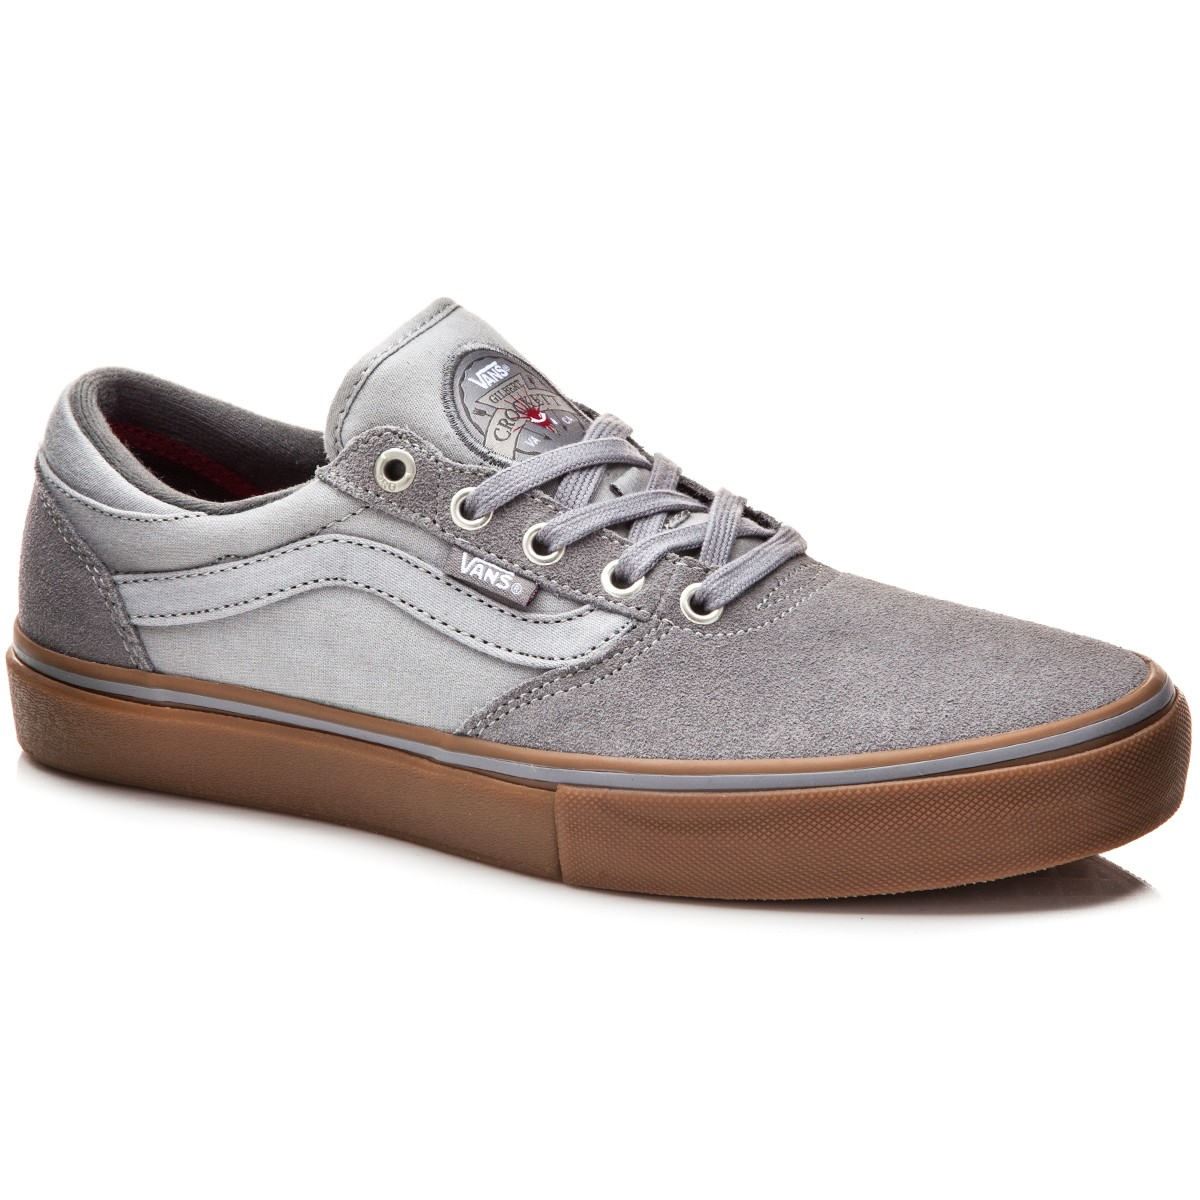 Vans Gilbert Crockett Pro Shoes 685b9e1536